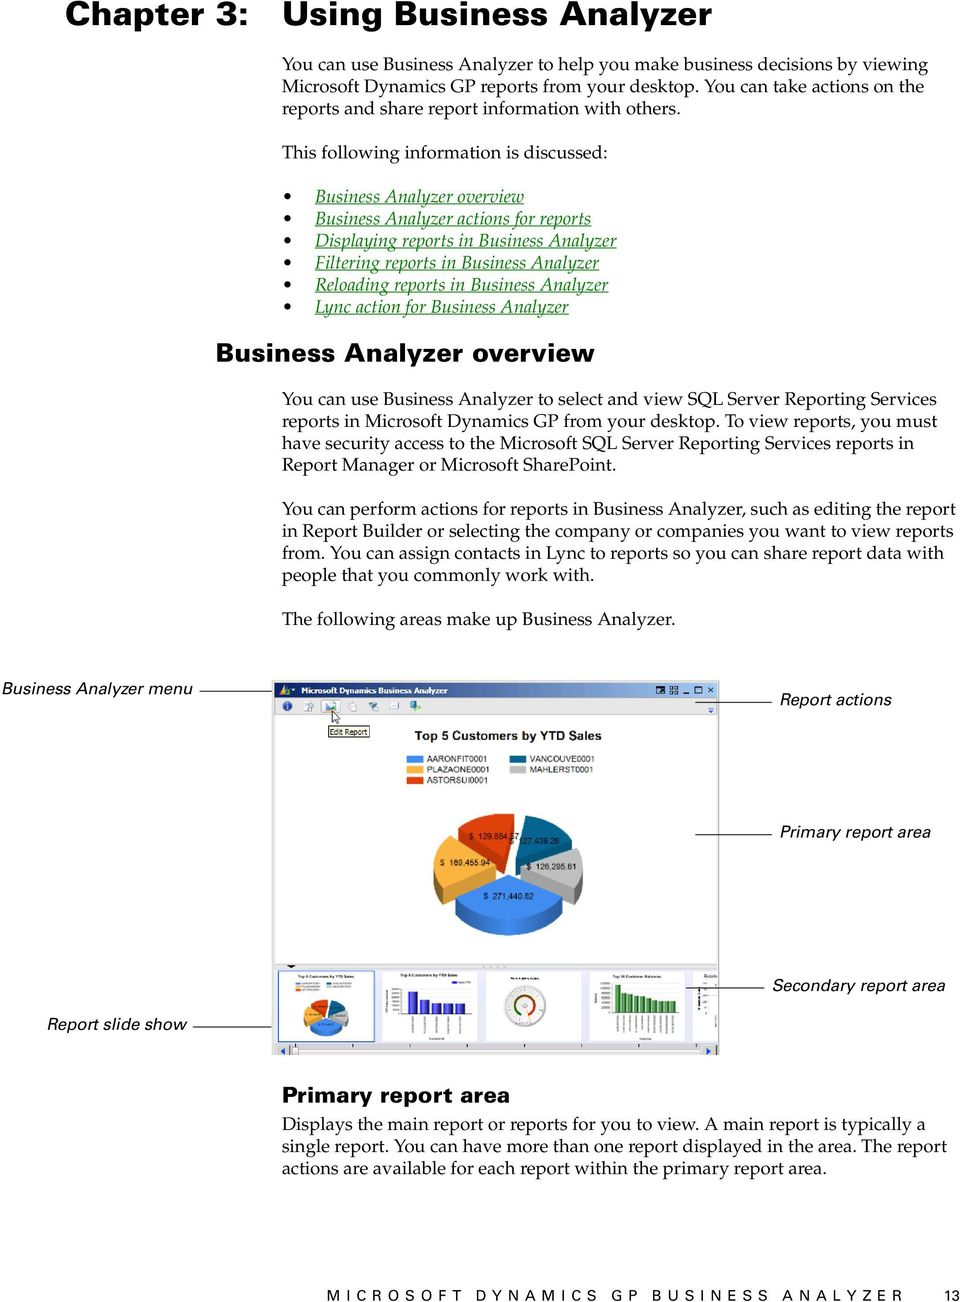 This following information is discussed: Business Analyzer overview Business Analyzer actions for reports Displaying reports in Business Analyzer Filtering reports in Business Analyzer Reloading